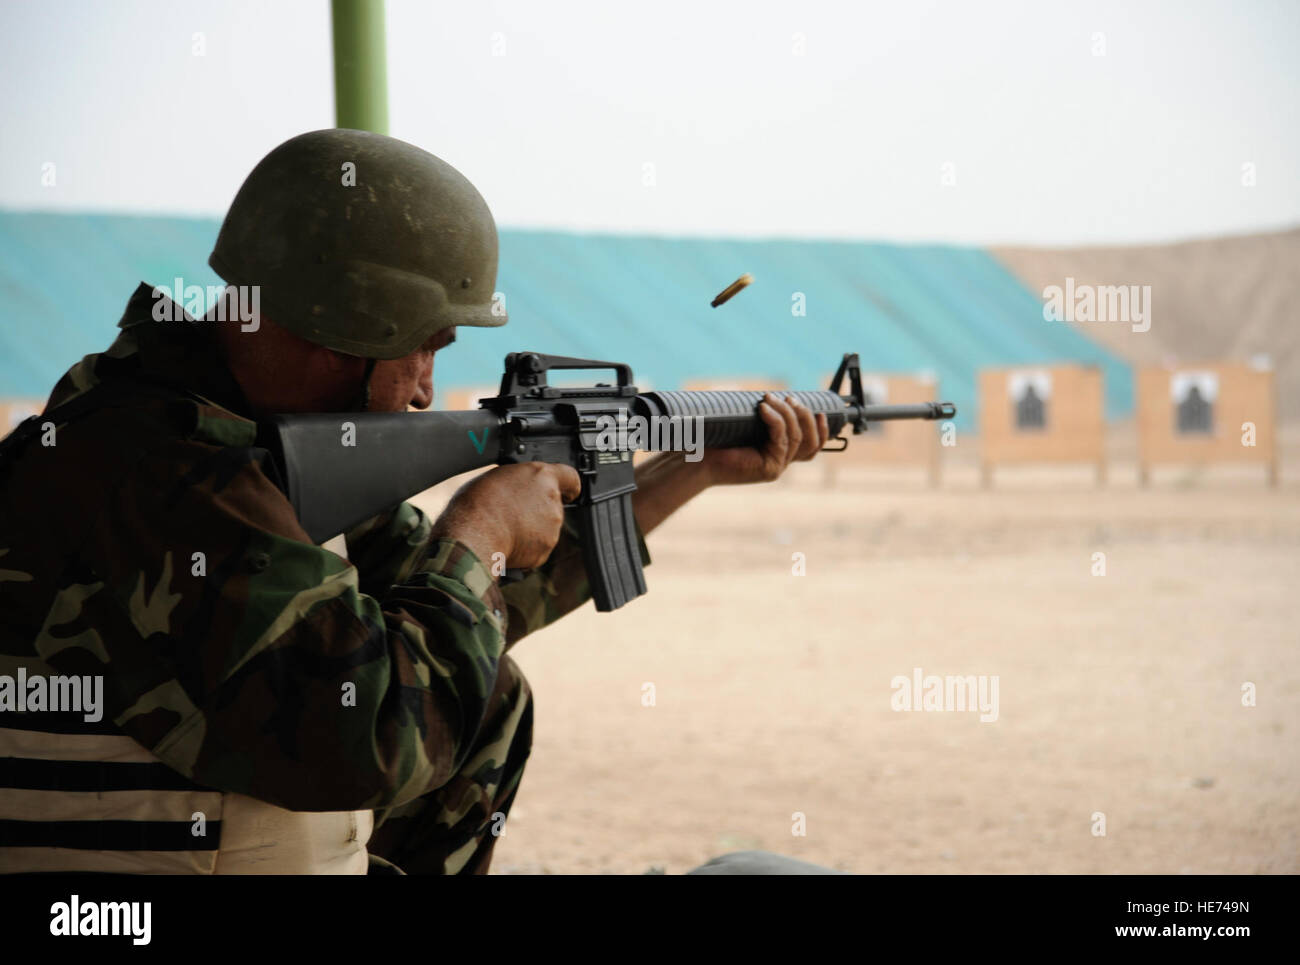 Iraqi army Sgt. Maj. Hannoon Saskbor Arian al Taai, Taji Location Command Sgt. Maj., fires his M-16 rifle at Taji - Stock Image